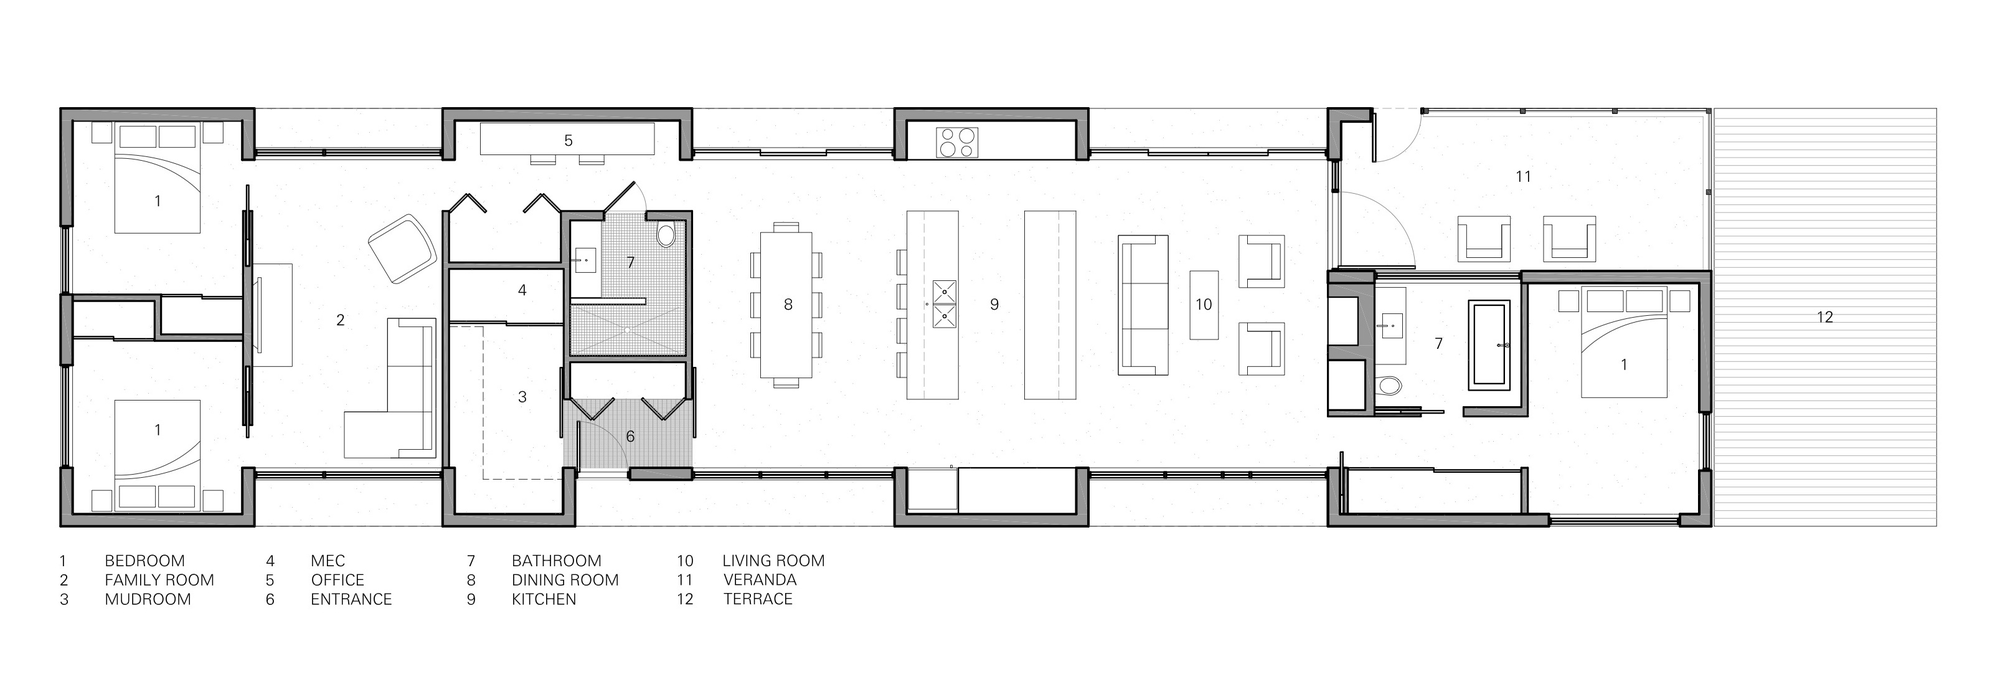 Simple linear concept organized around the central living space ...